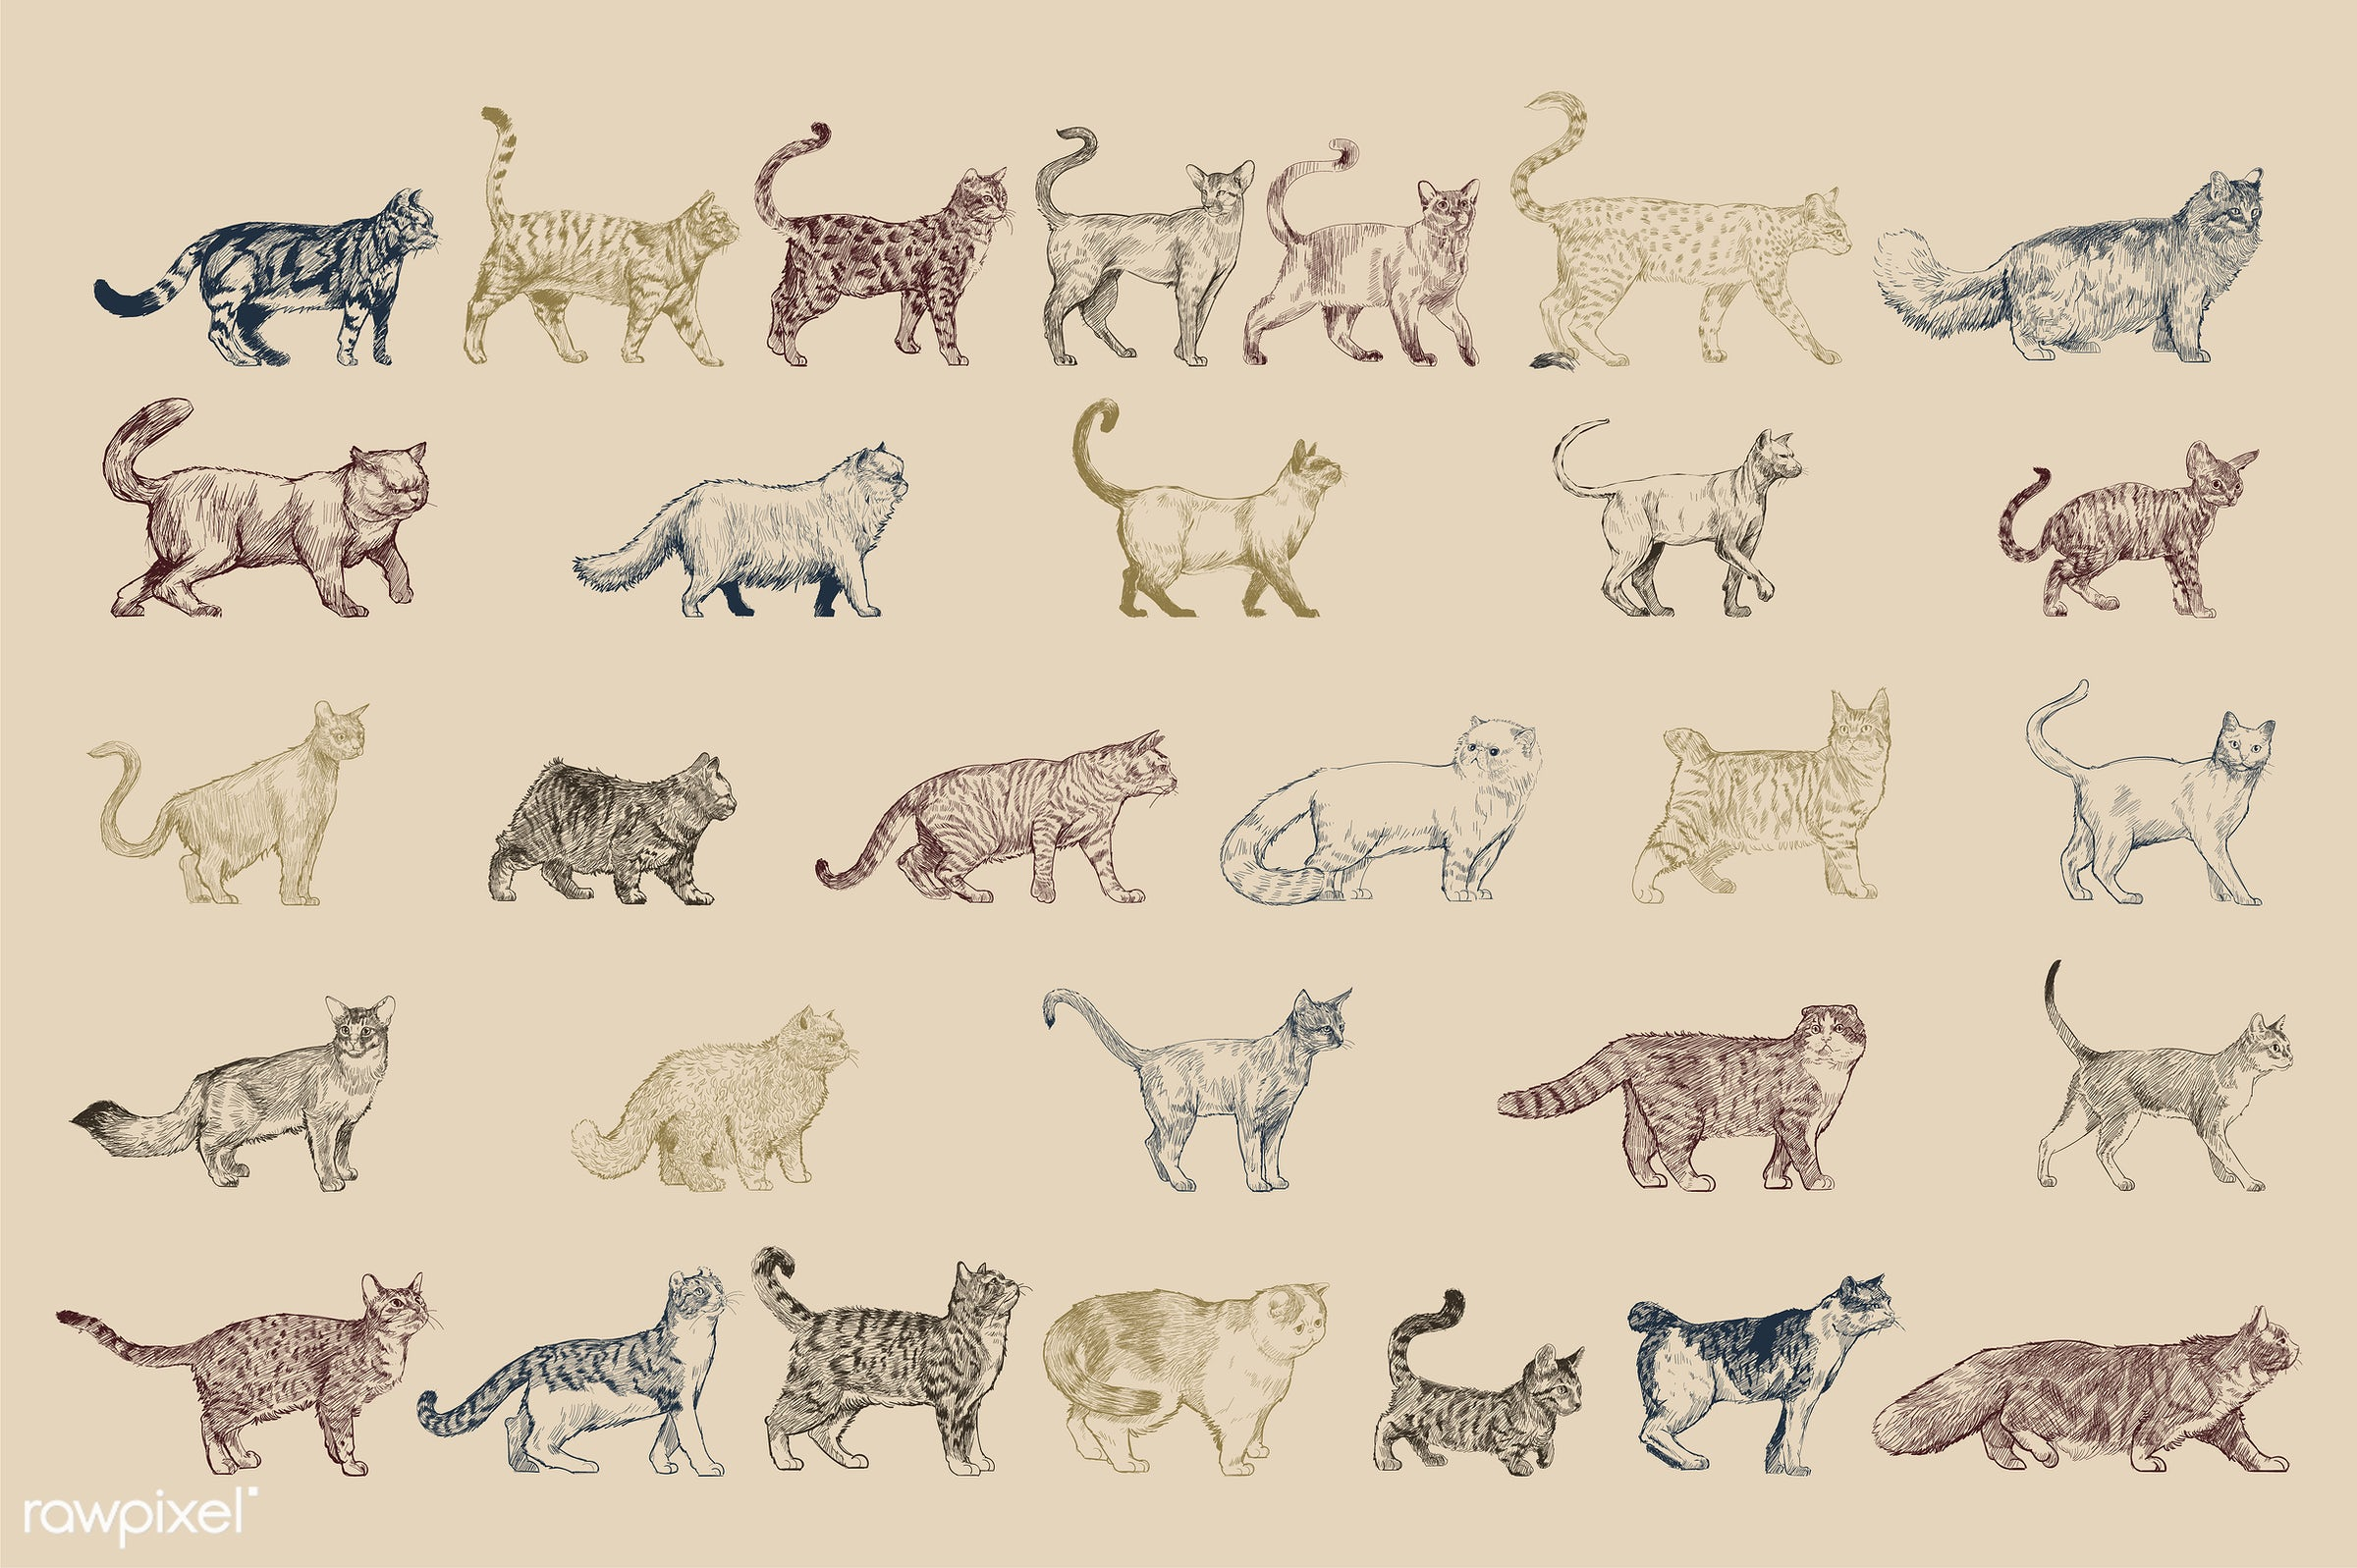 Illustration drawing style of cat breeds collection - animal, animals, breeds, cat, cats, collection, drawing, engraving,...